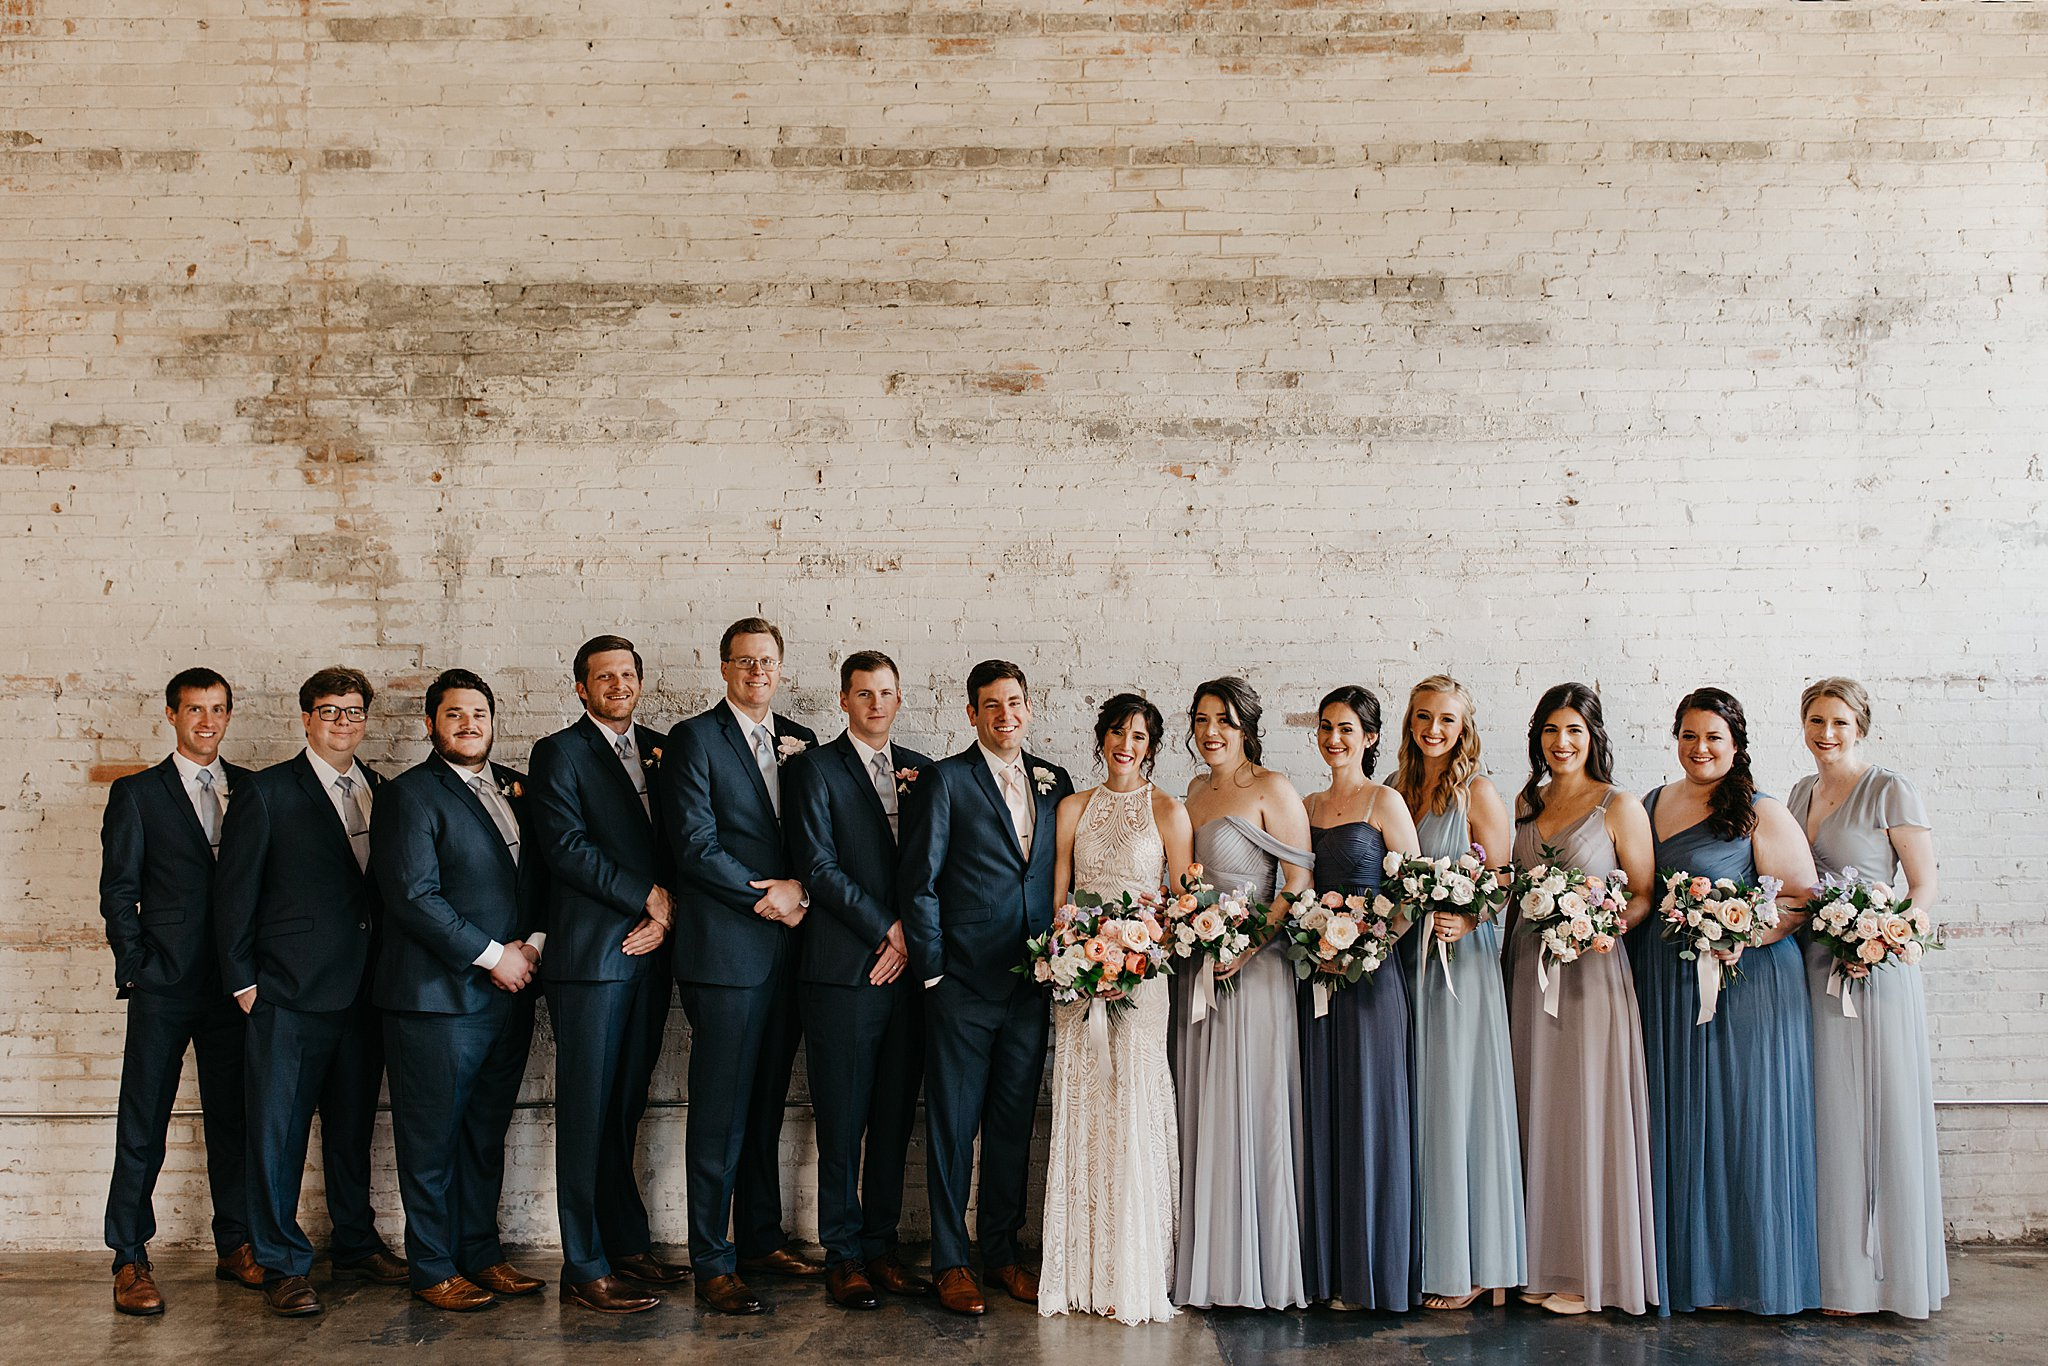 Wilderlove Co_Wedding Photographer_Industrial Wedding_Jewish Wedding_Dallas Texas Wedding_Brake & Clutch Warehouse_North Texas Photographer_0032.jpg